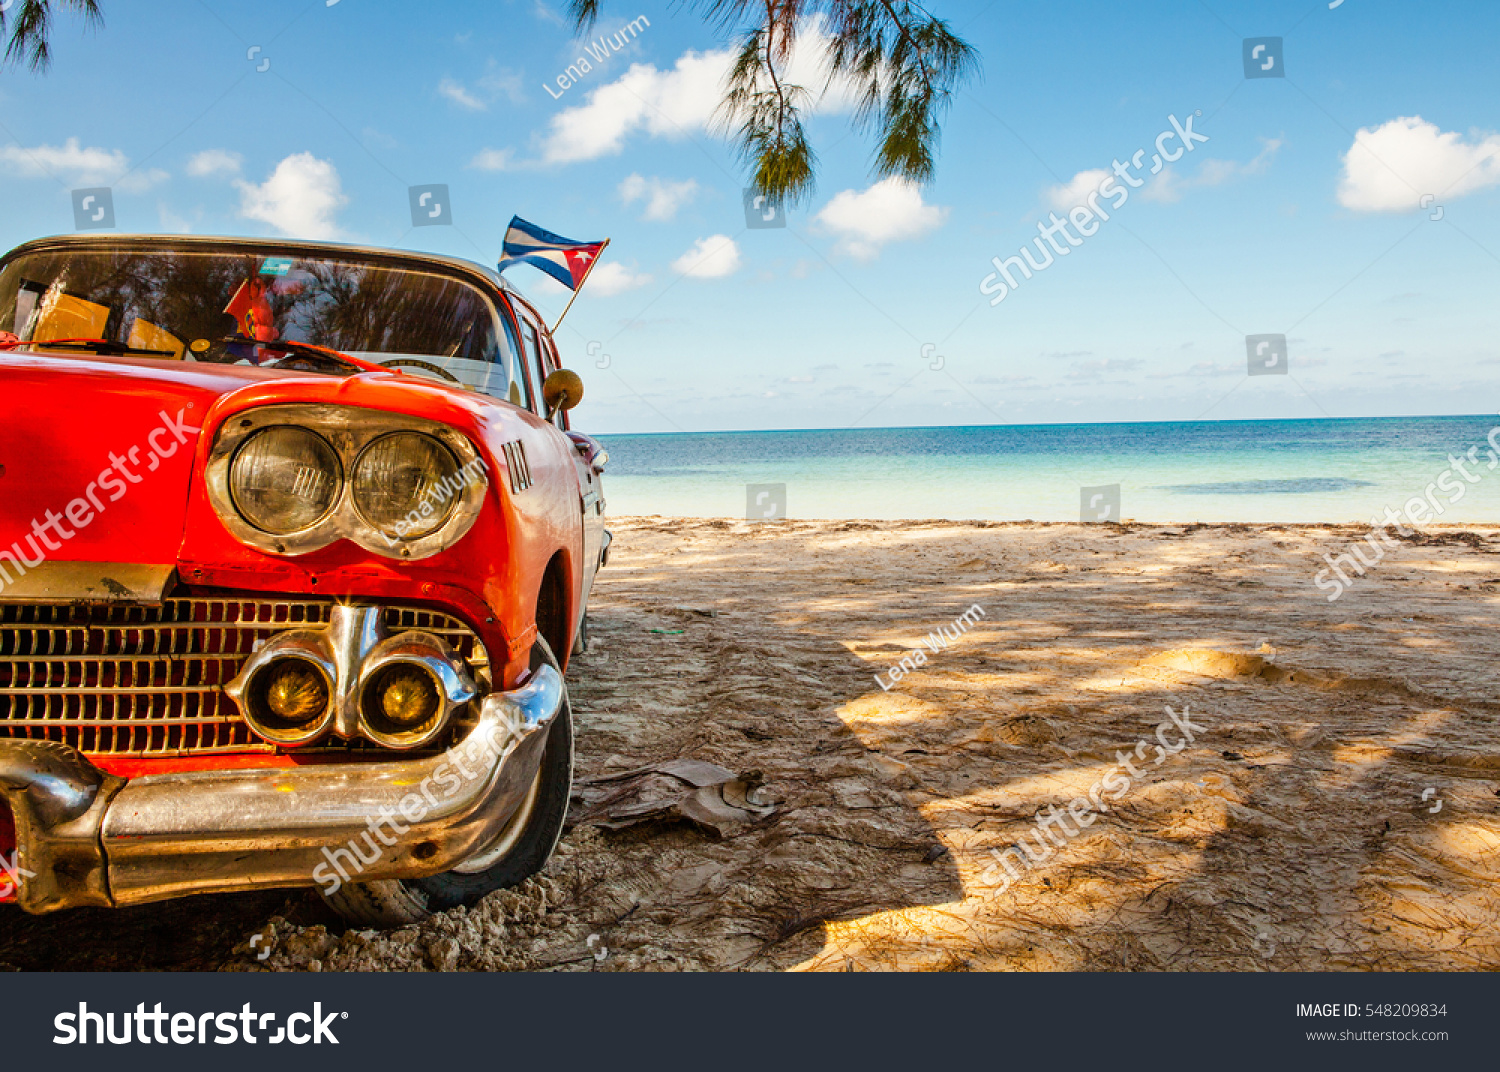 American classic car on beach cayo stock photo 548209834 for Classic american images